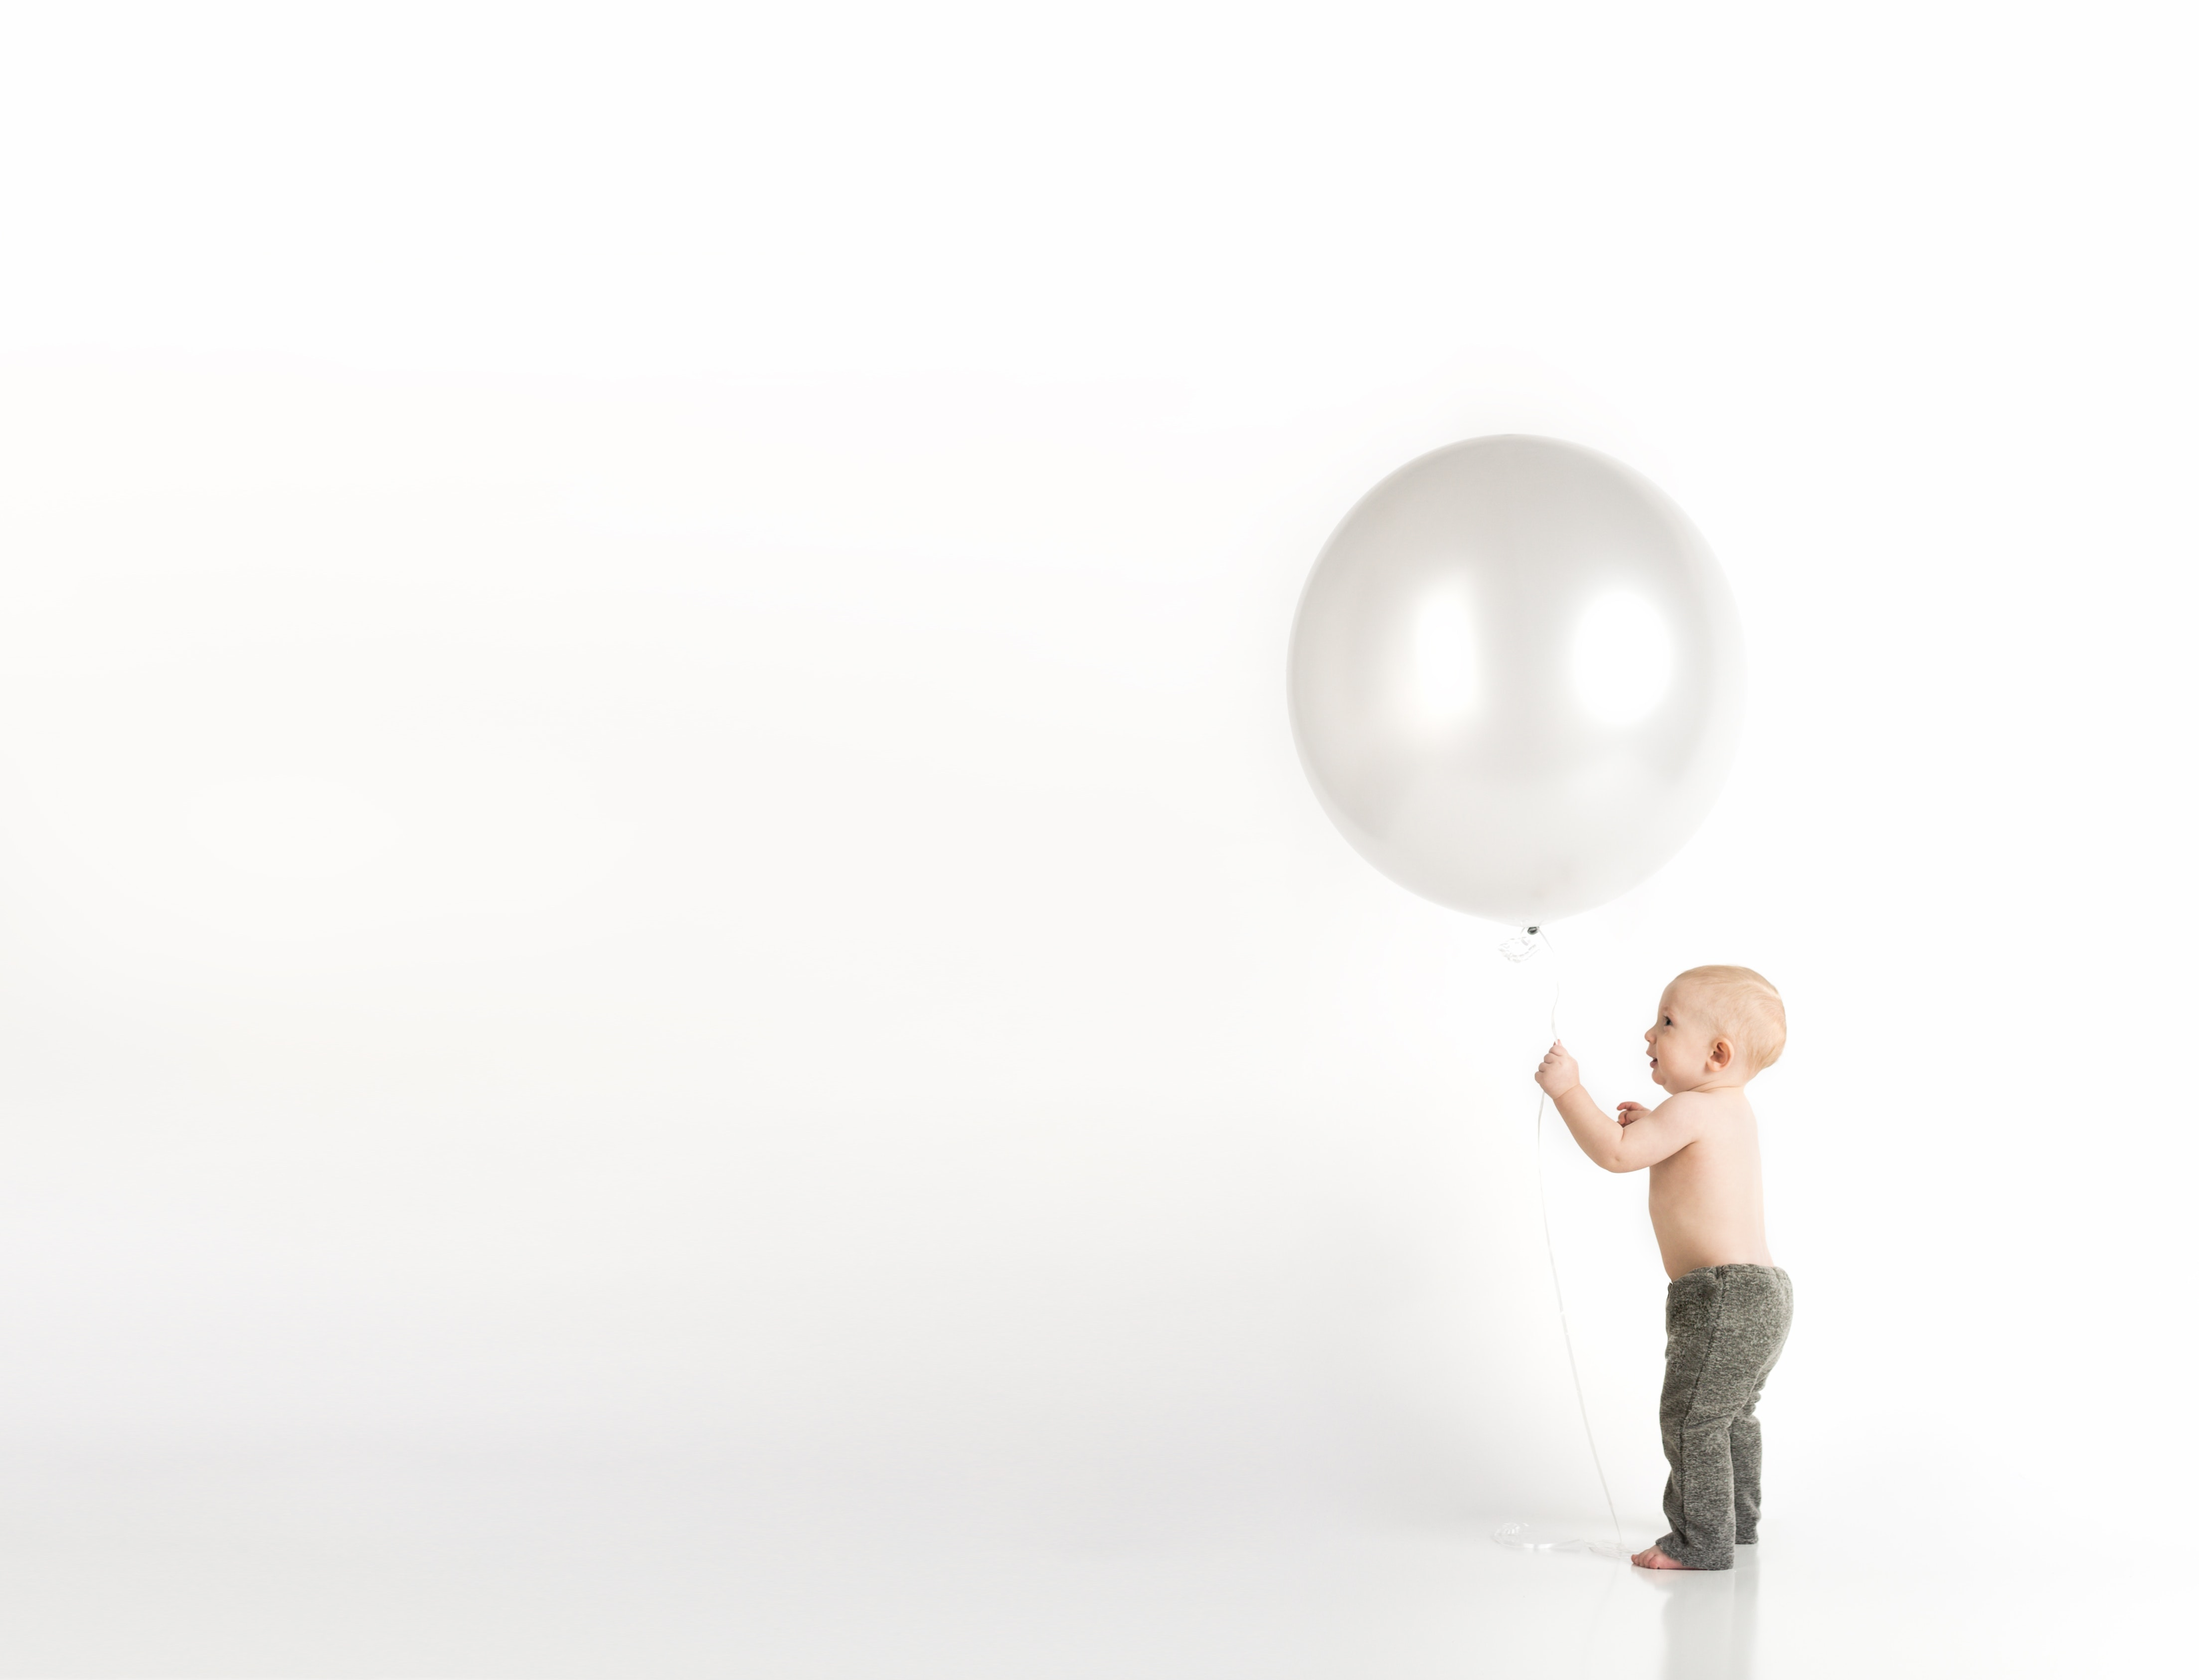 Baby in Black Pants Holding White Balloon While Standing, Innocence, Young, Wear, Toddler, HQ Photo